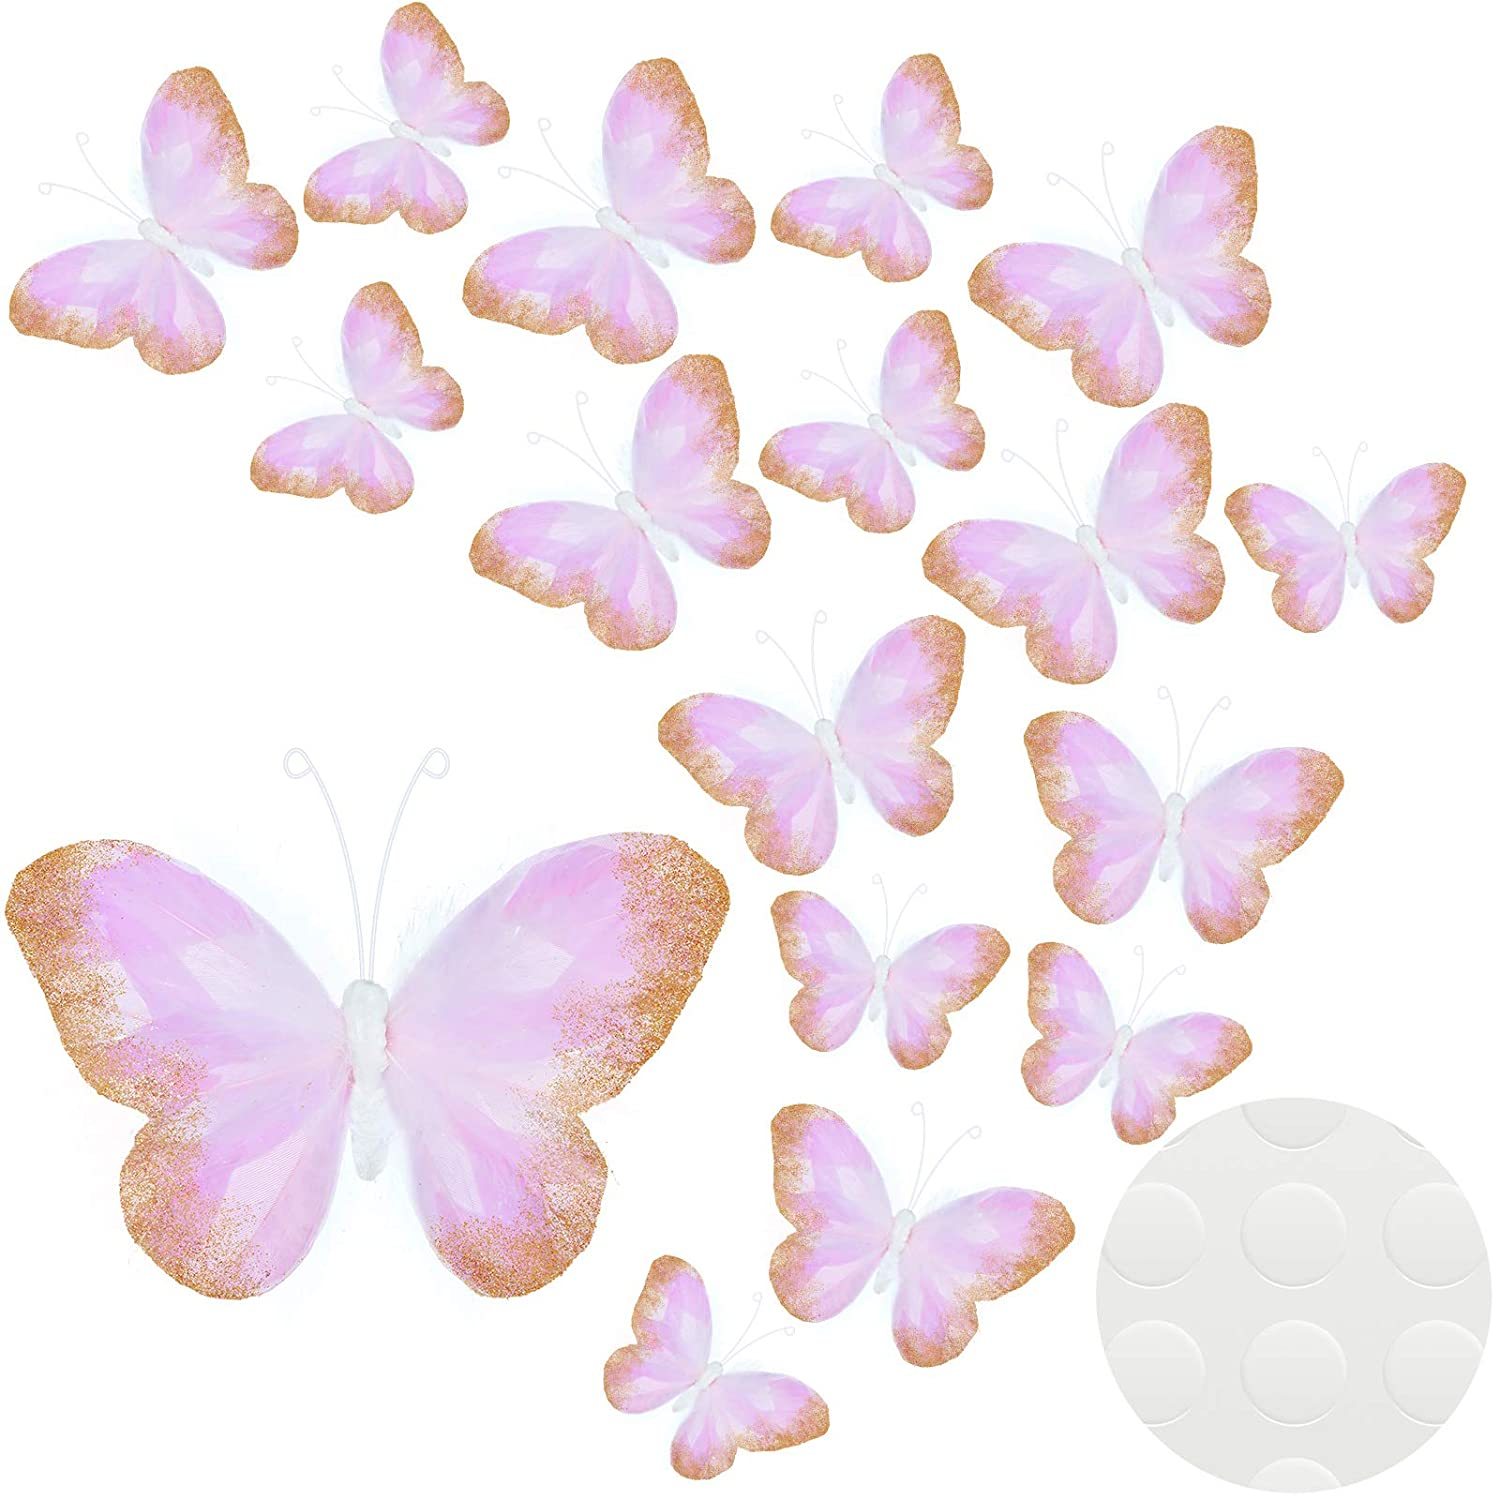 16 Pieces Feather 3D Butterfly Wall Decals Gold Glitter Butterfly Decor Stickers for Room Home Nursery Classroom Offices Kids Girl Boy Bedroom Bathroom Living Room Decor (Light Purple)